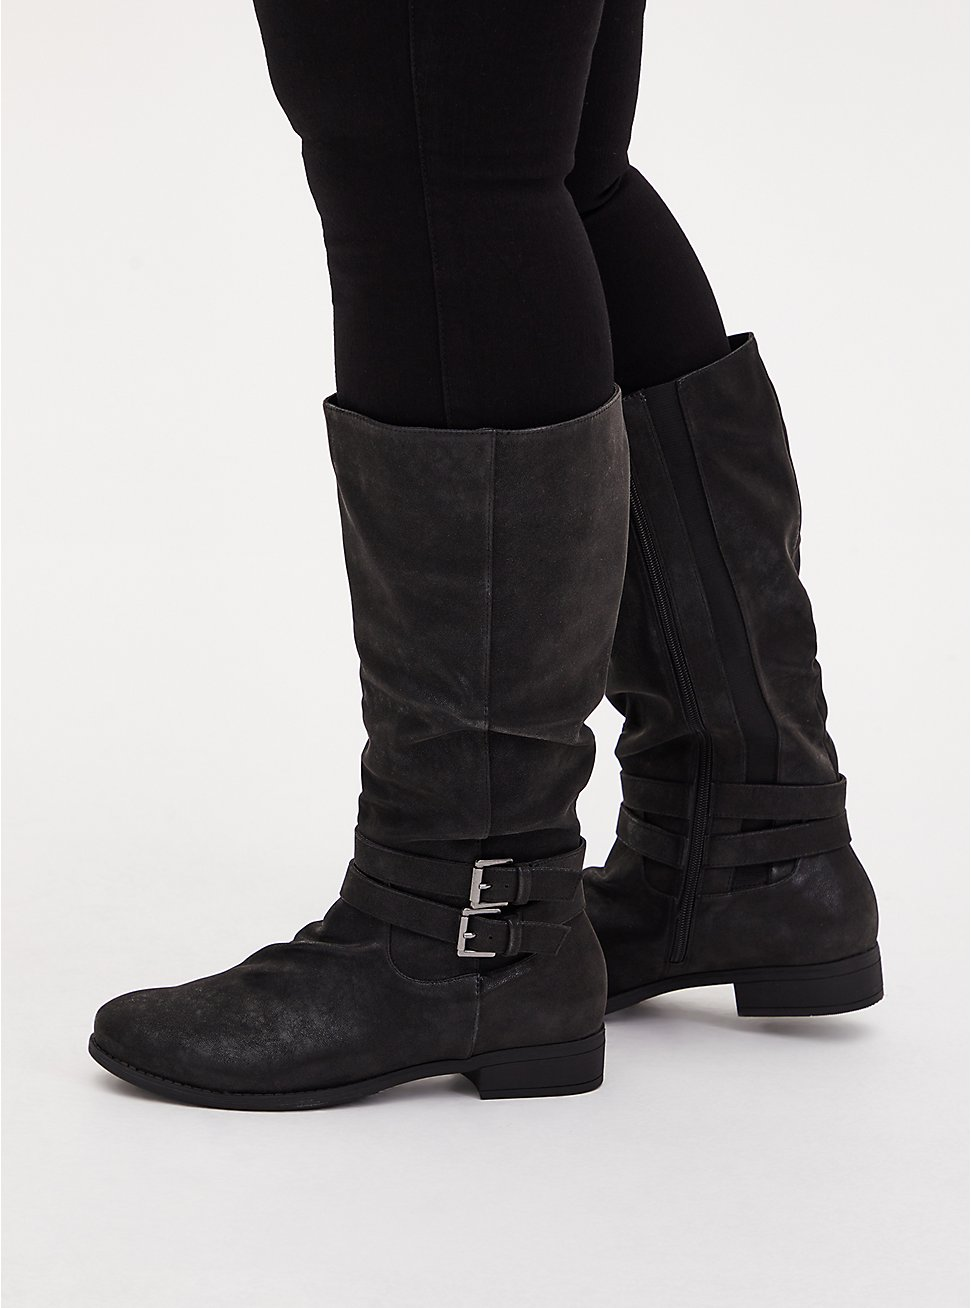 Plus Size Black Oiled Faux Suede Mid-Calf Tall Boot (WW), BLACK, hi-res